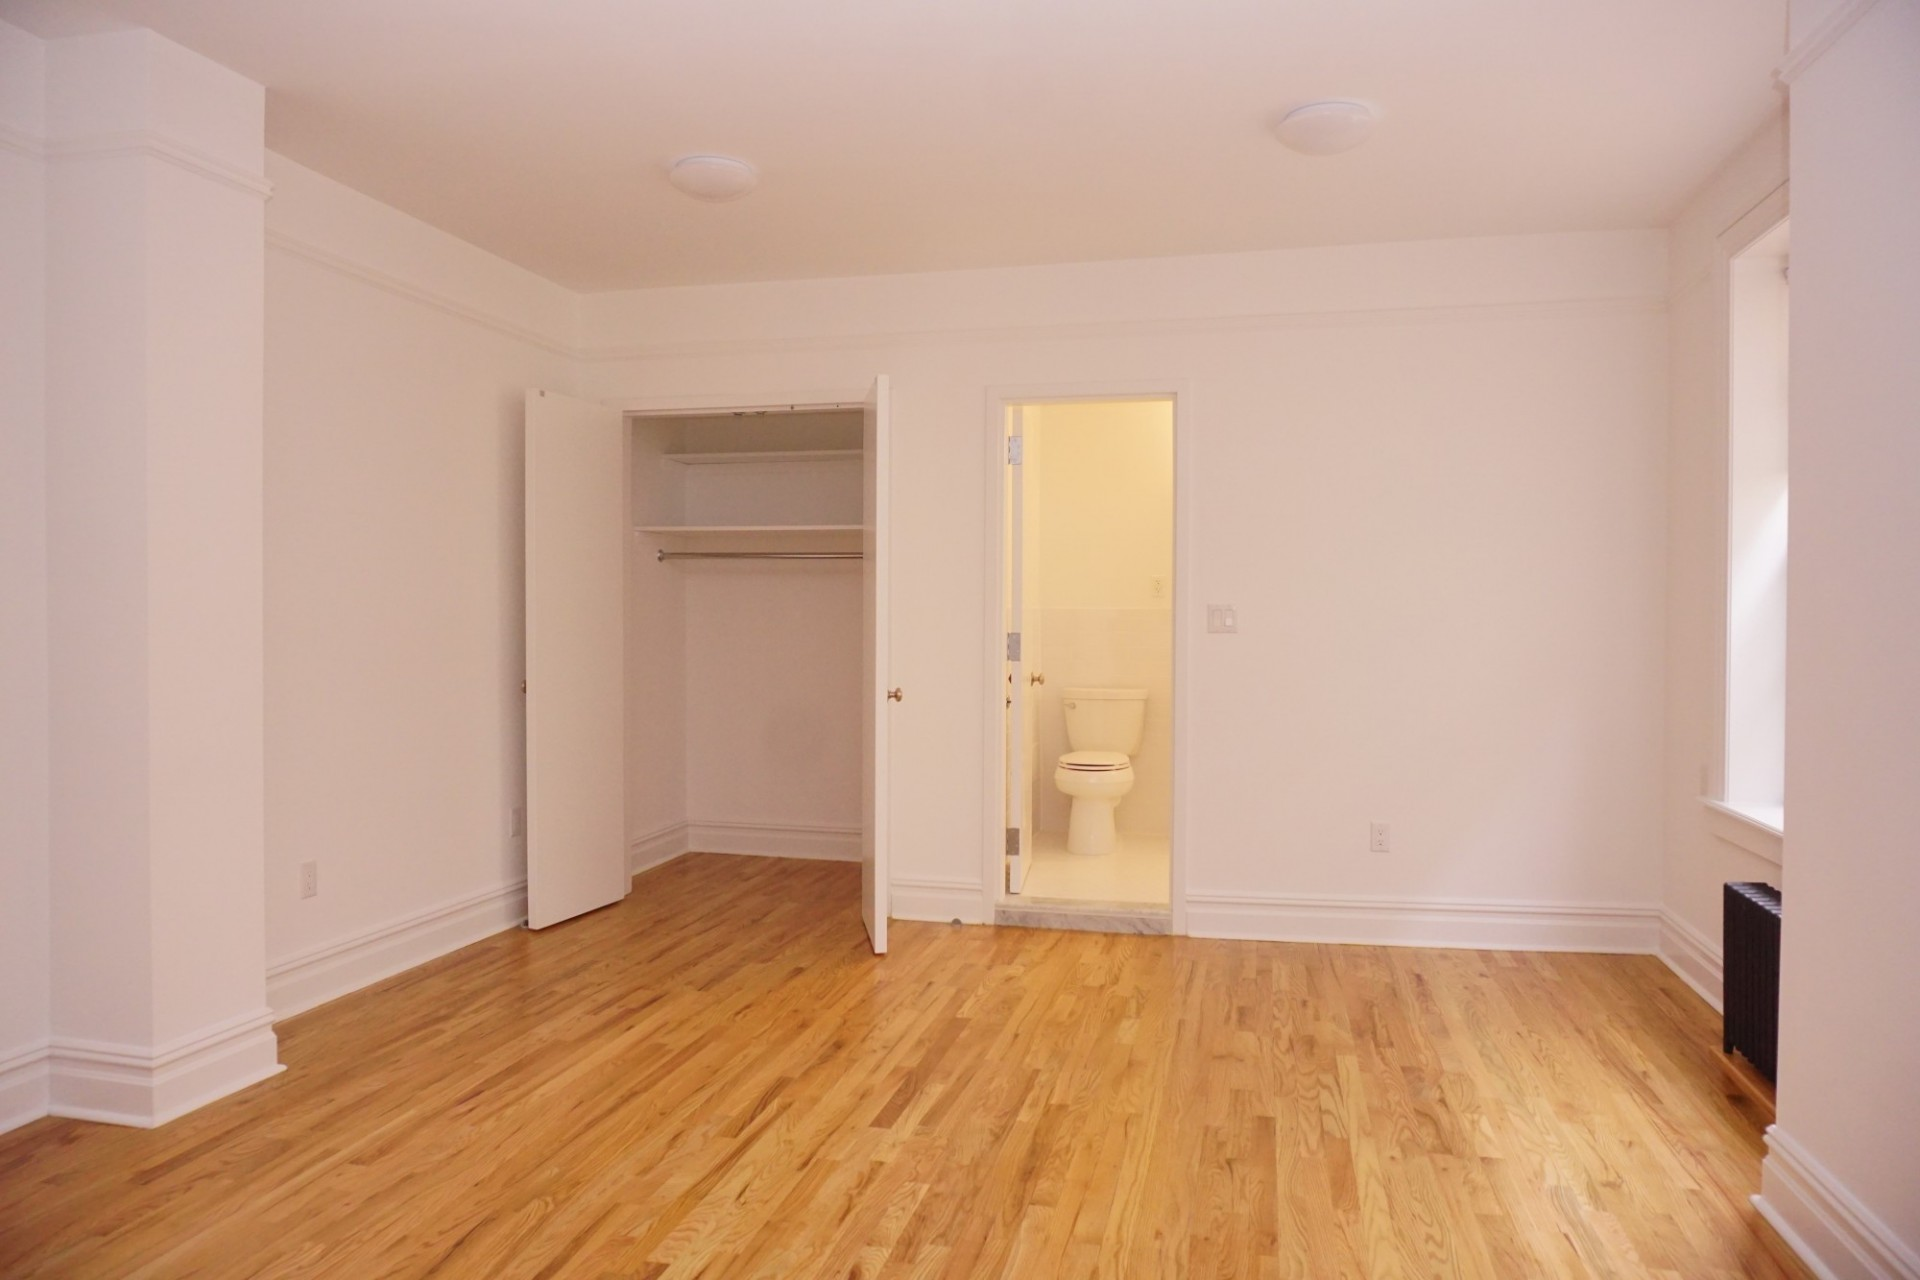 Example of a studio apartment - closet, living space and bathroom view